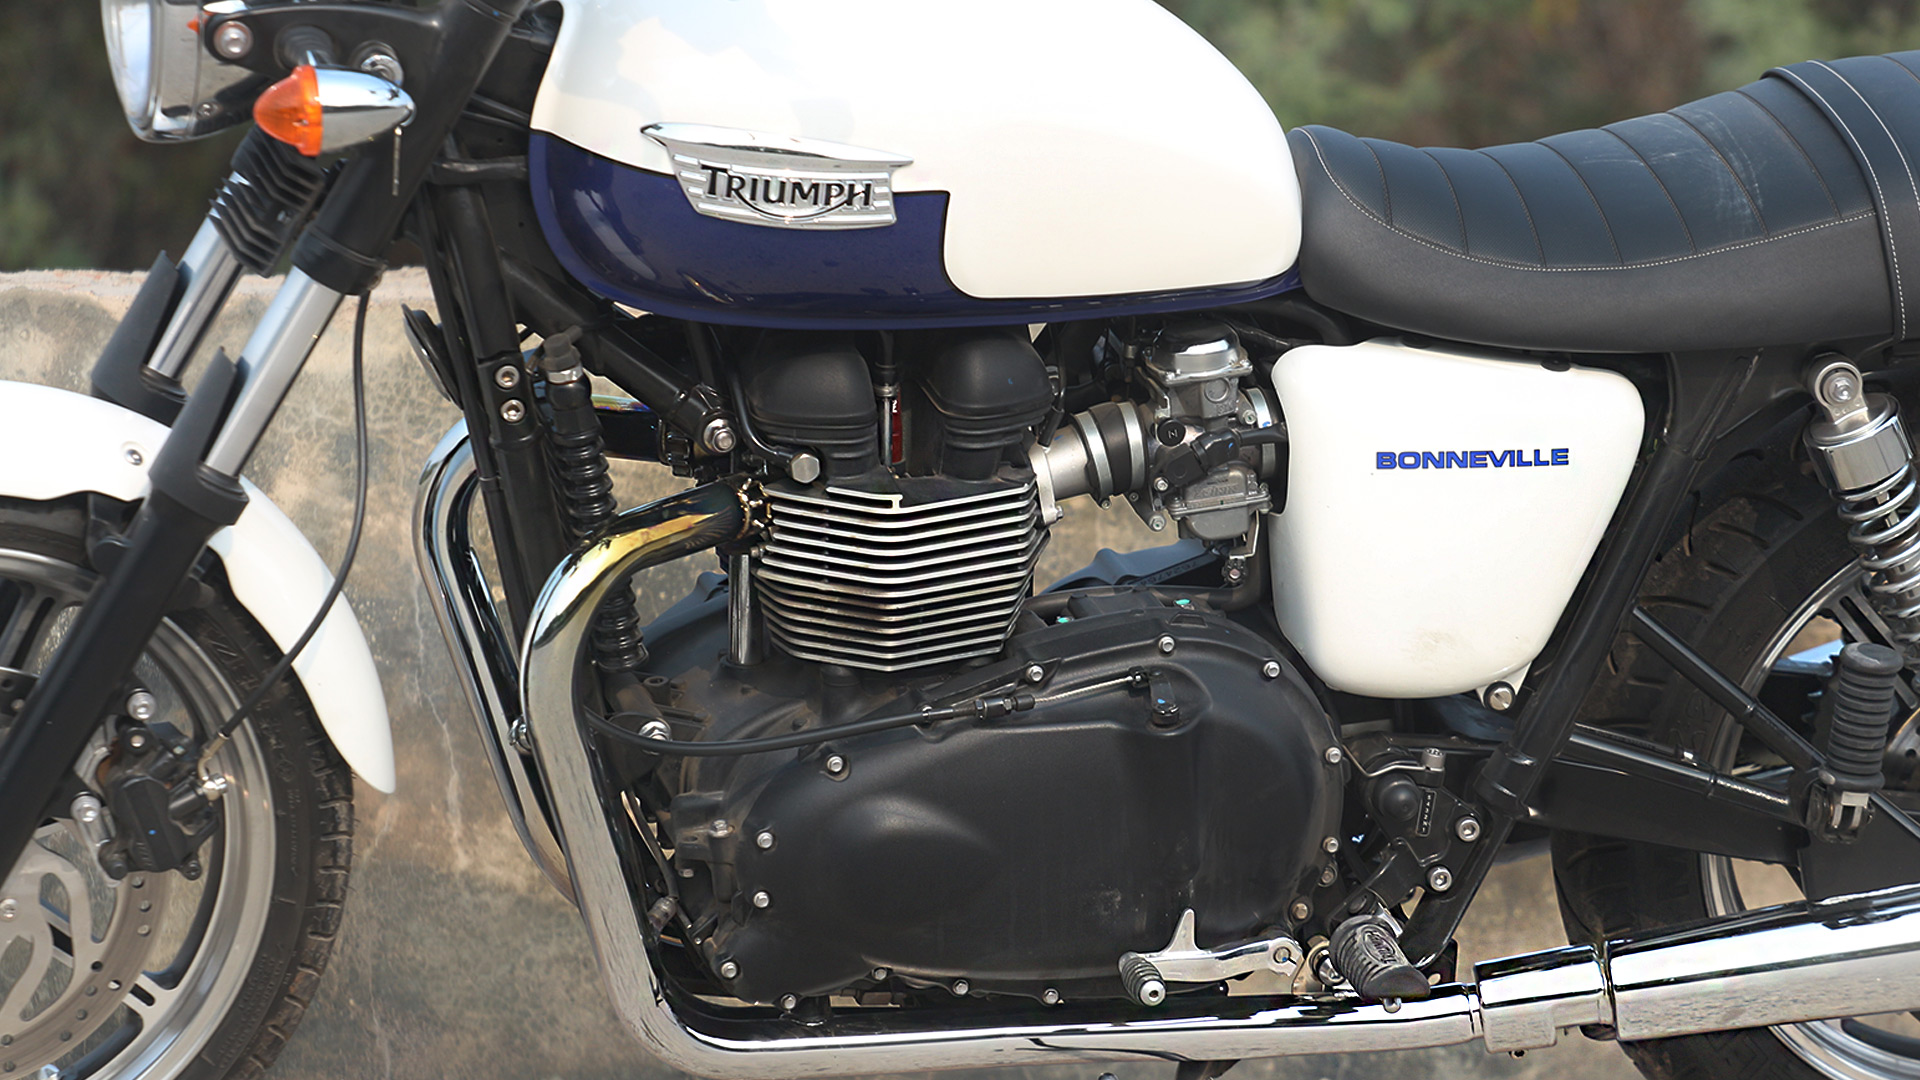 Triumph Bonneville 2016 T120 - Price, Mileage, Reviews ...